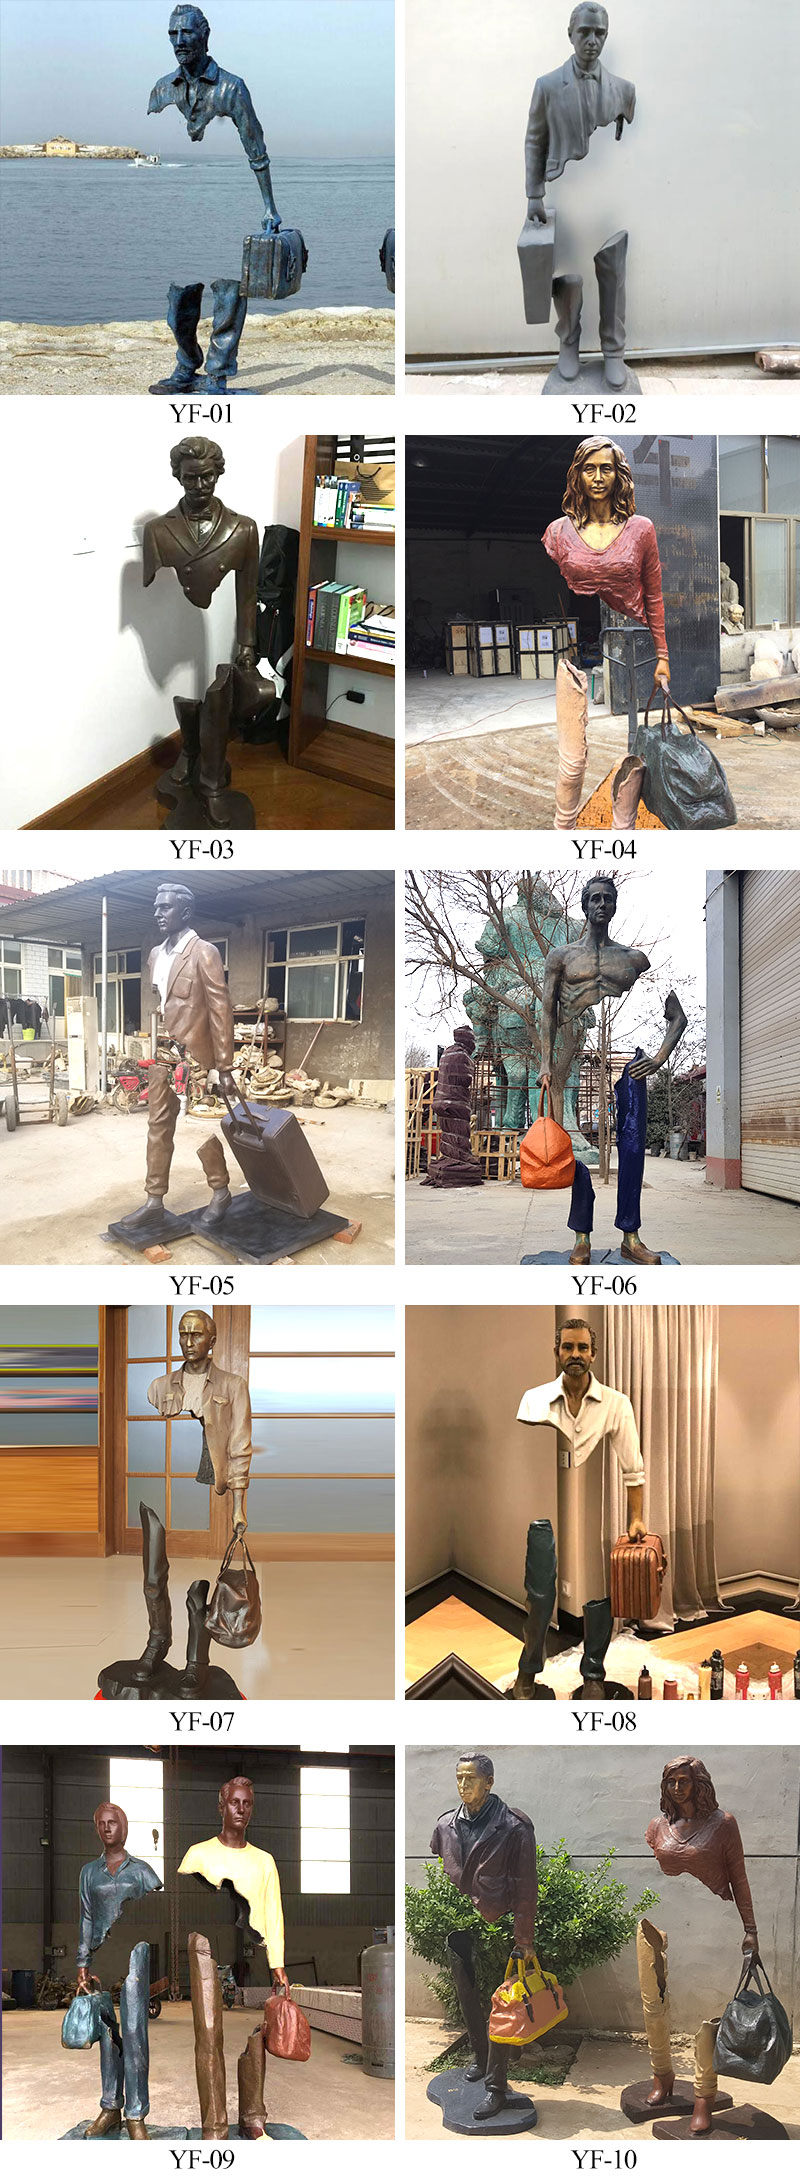 Famous Bruno catalano sculpture statue replica for outside